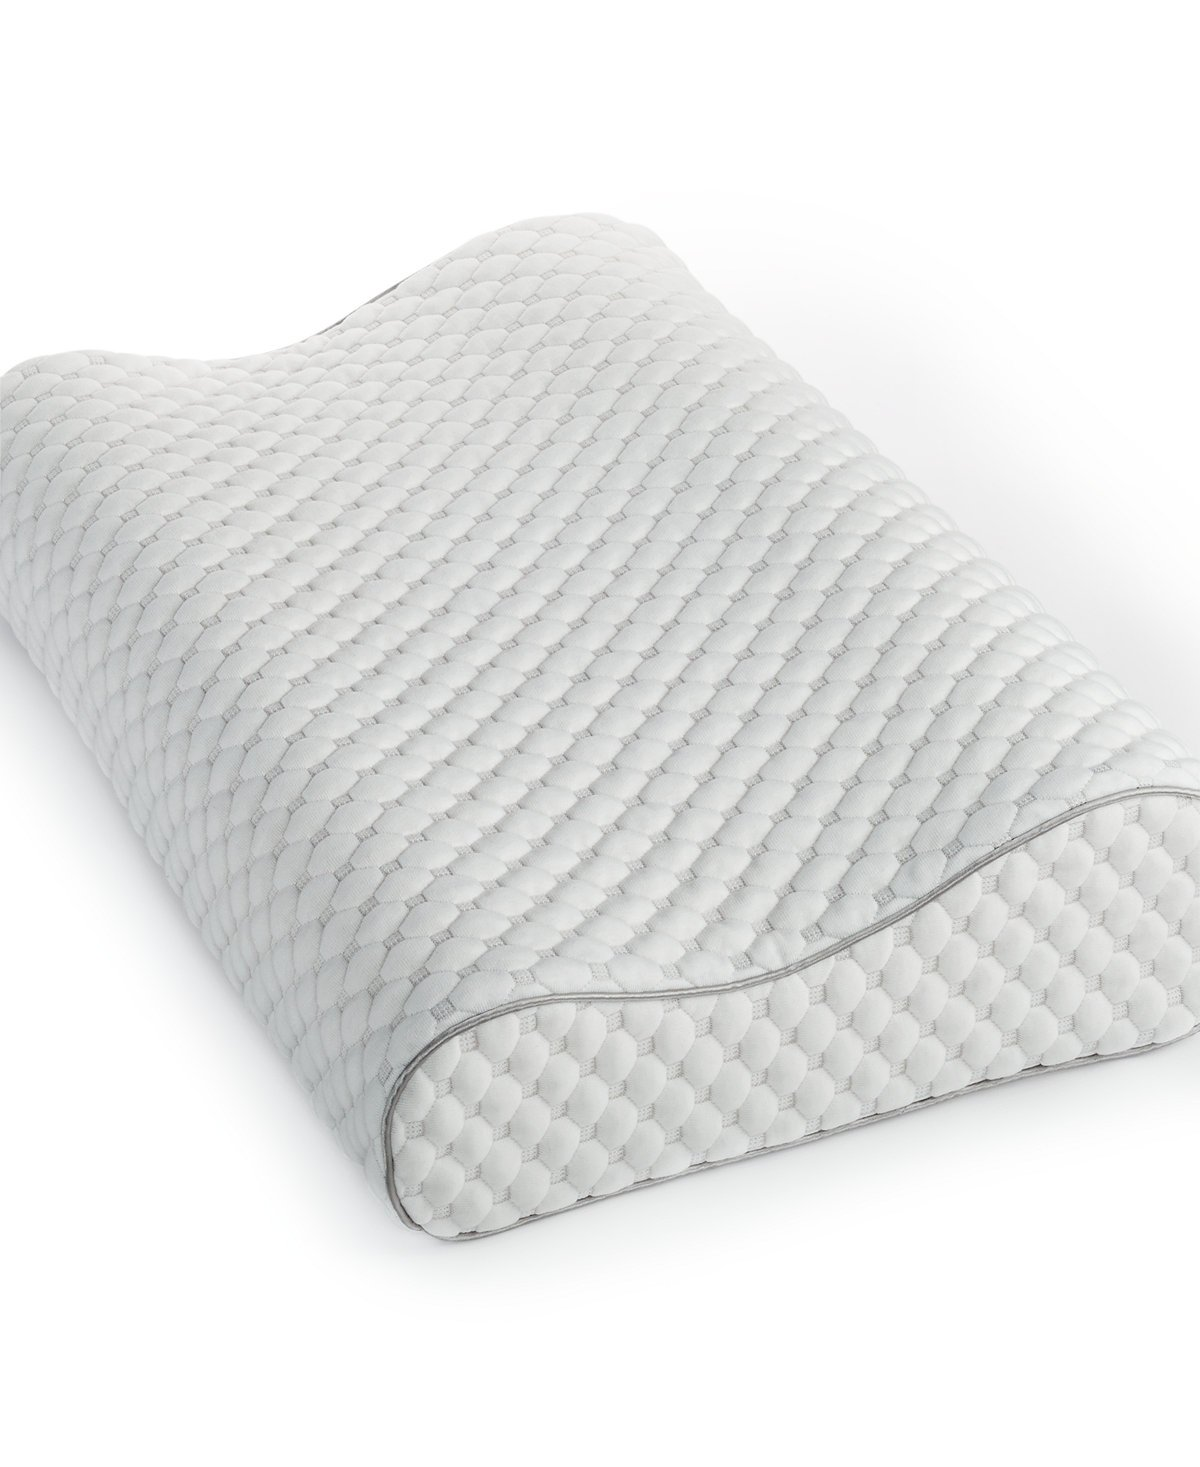 Martha Stewart Collection Dream Science Memory Foam Contour Pillow Bedding